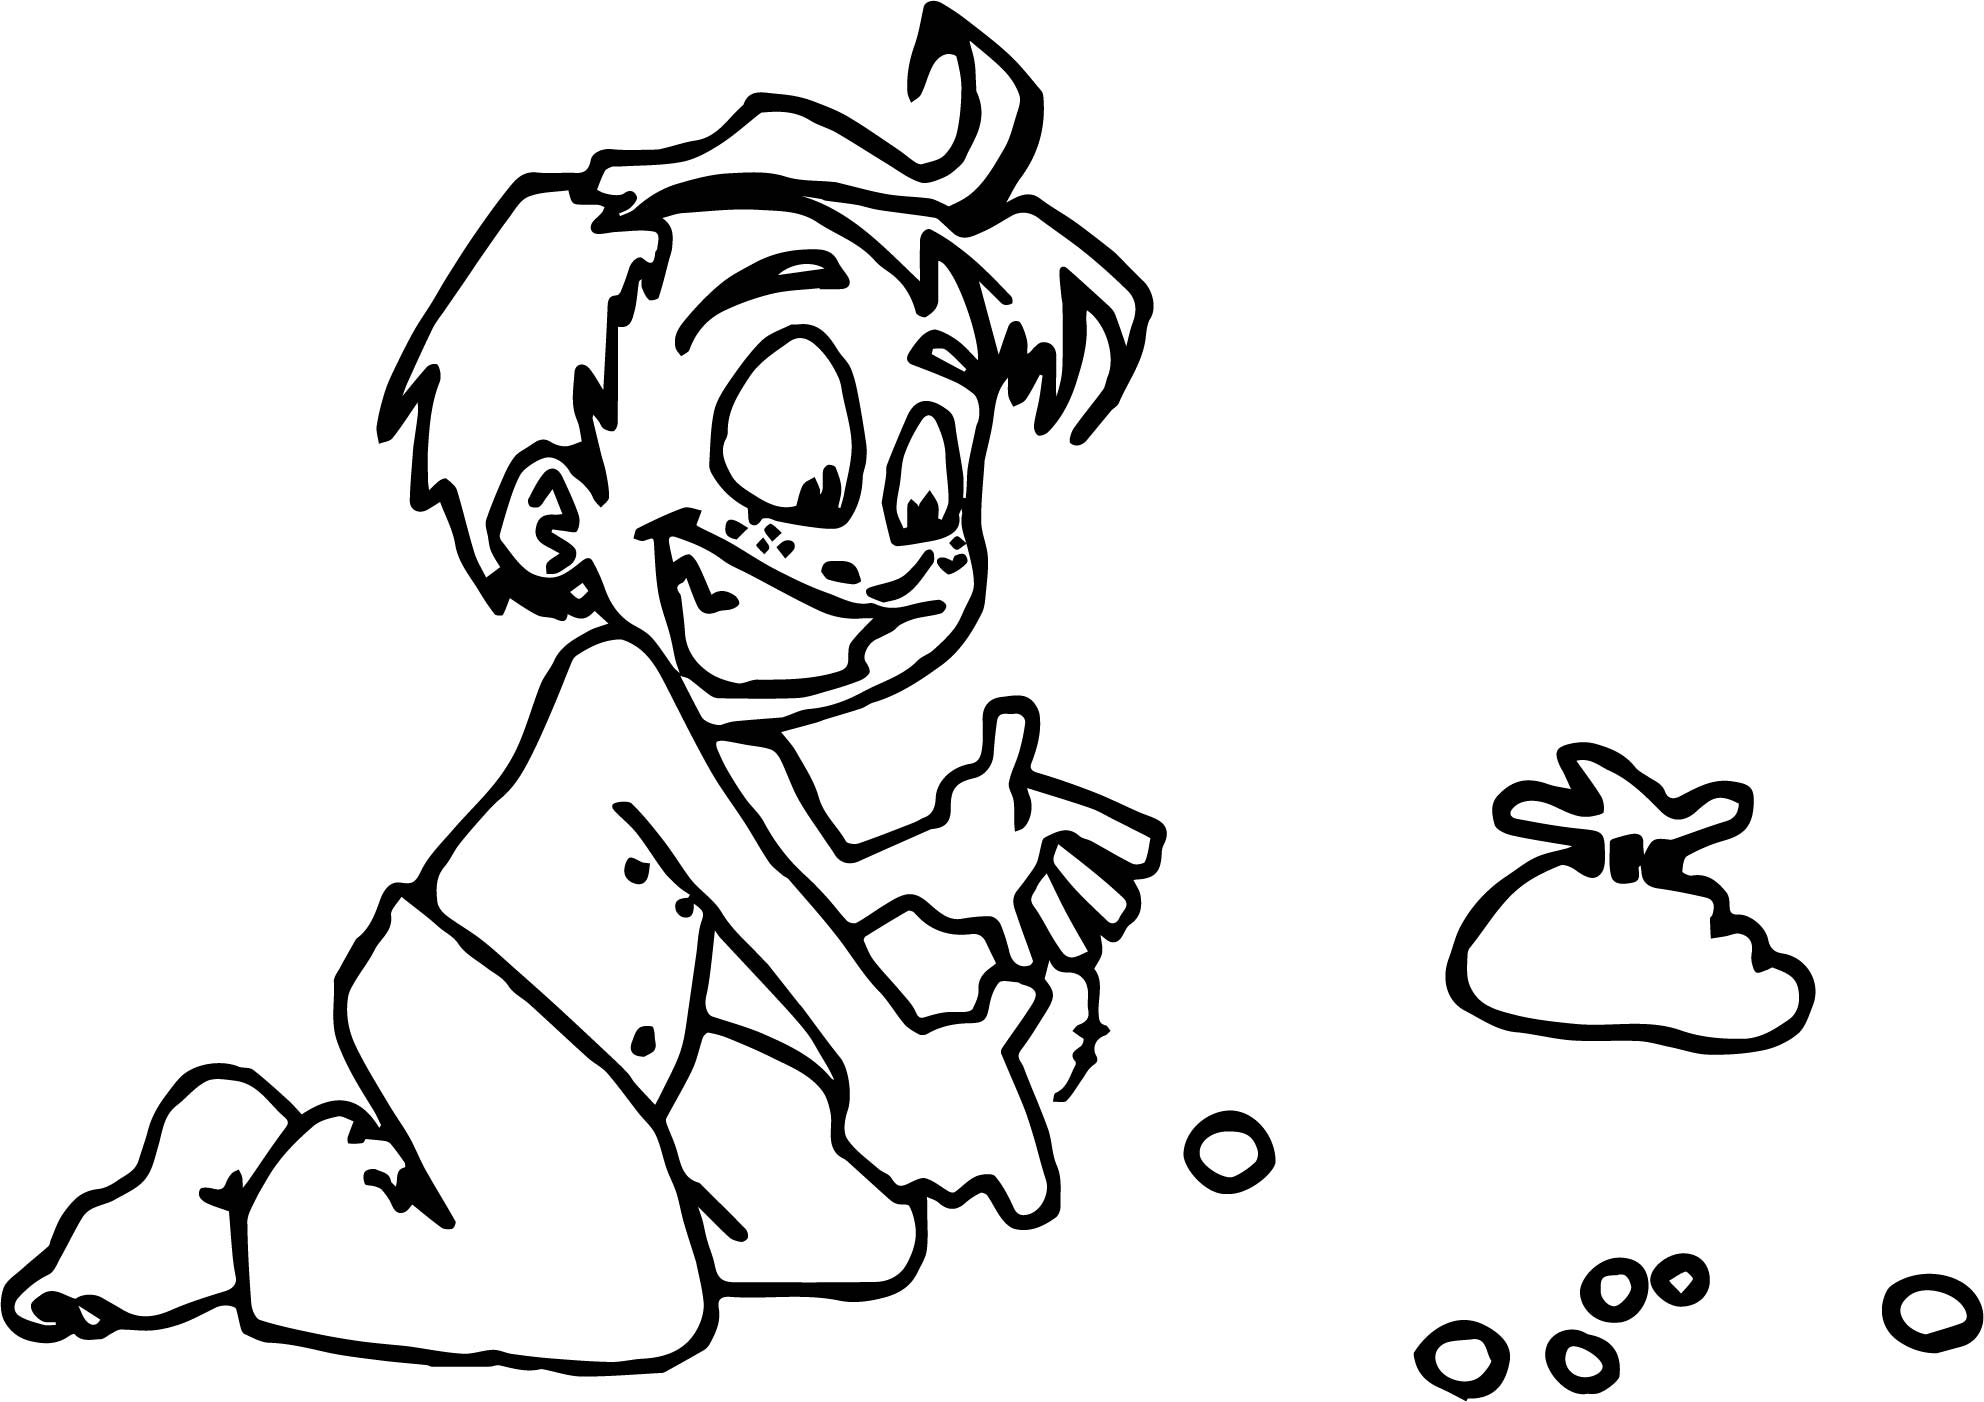 playing marbles child coloring page - Child Coloring Pages